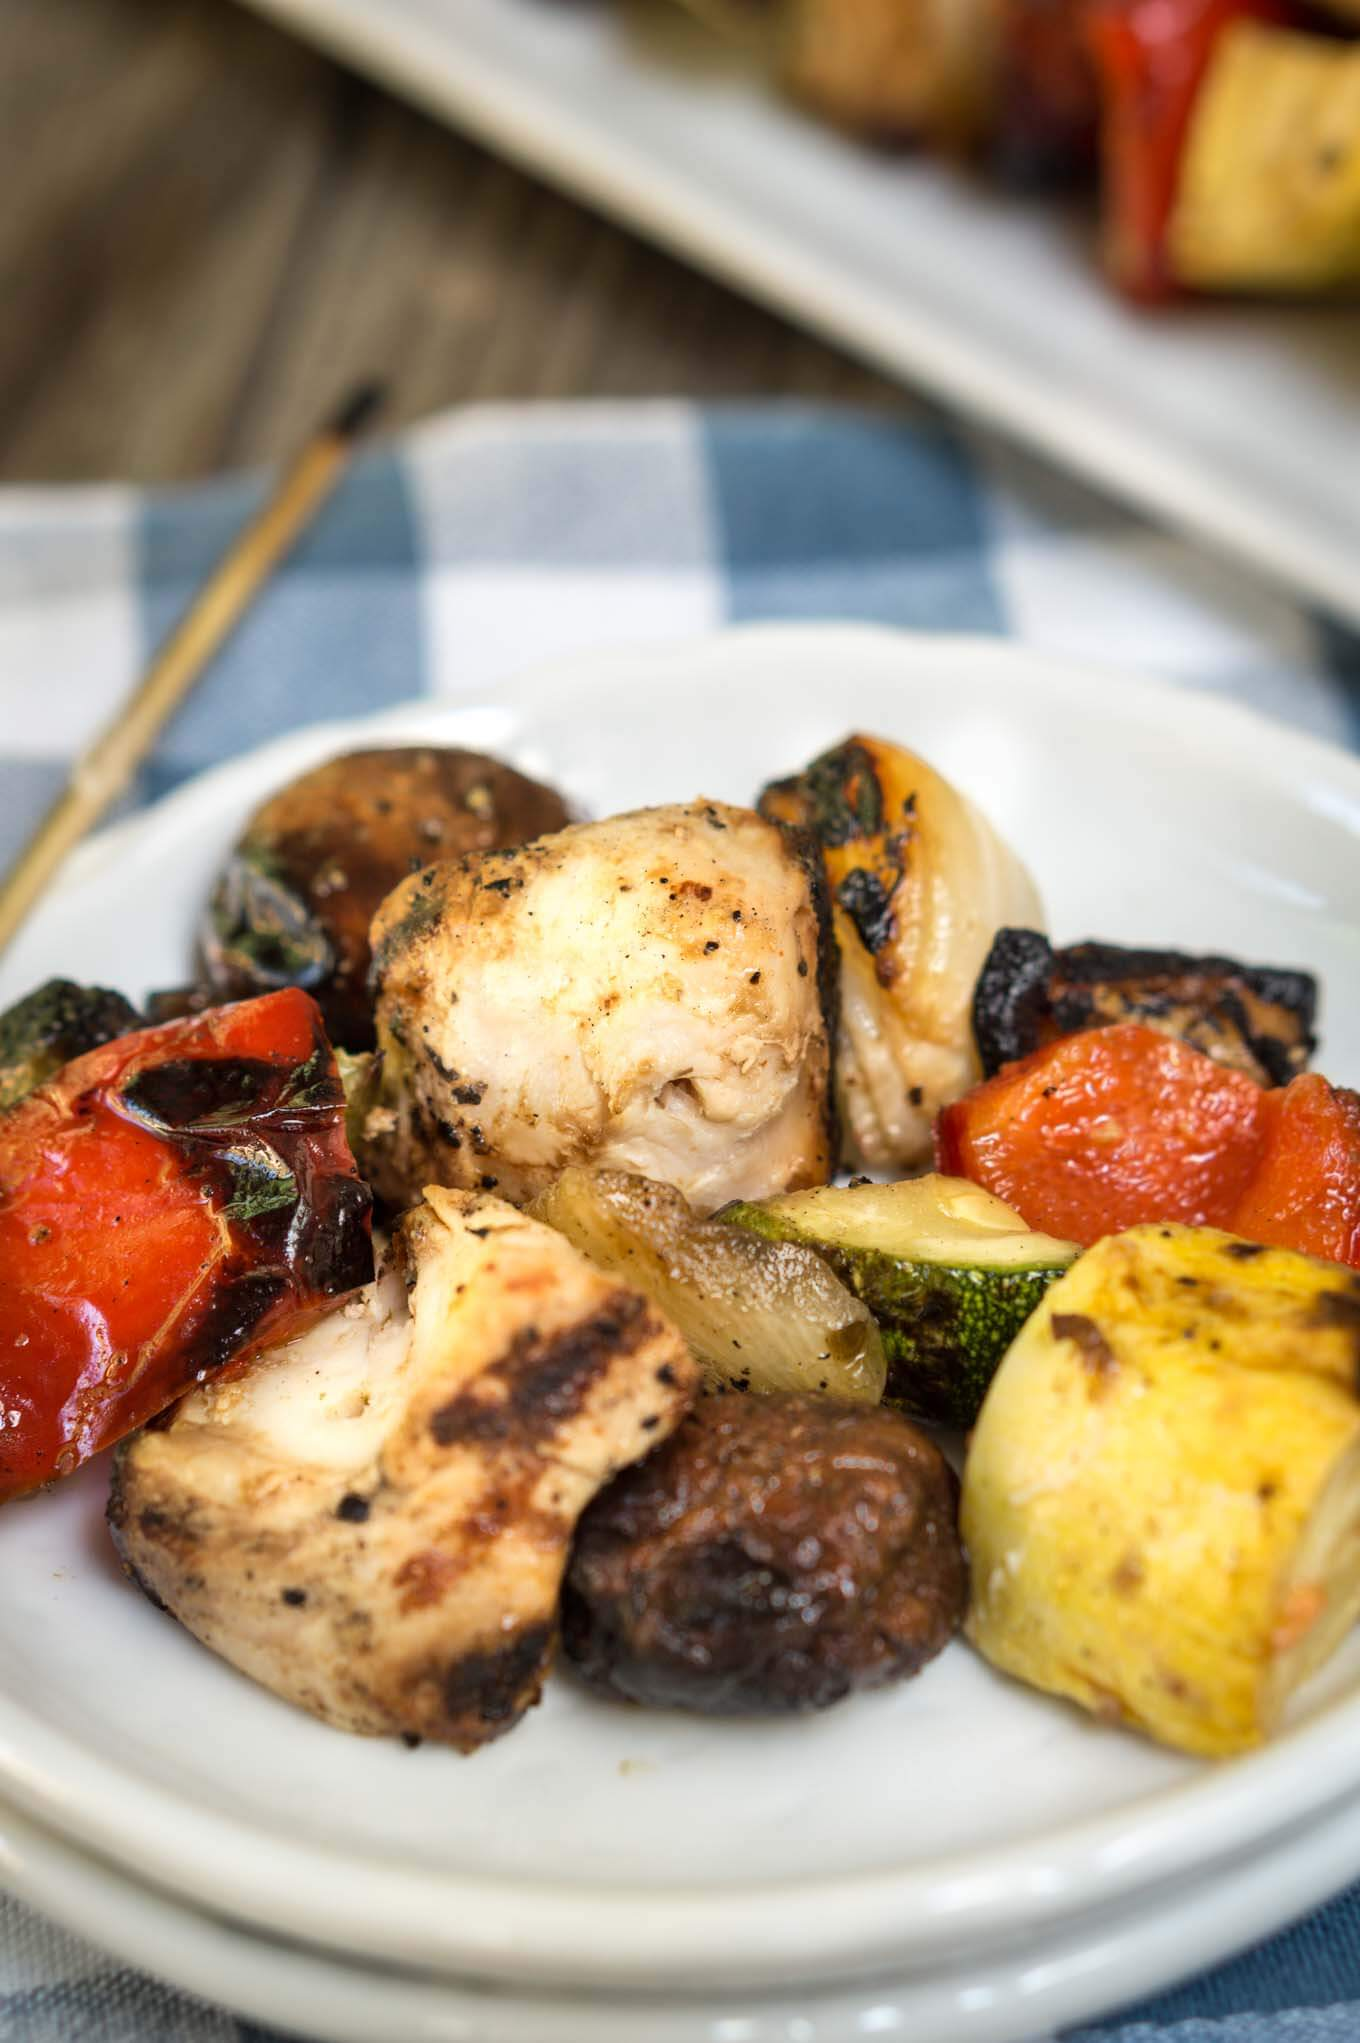 A plate of grilled Shish Kabobs filled with slices of squash, tomatoes, mushrooms, peppers, and chicken on a white plate over a blue checked tablecloth.